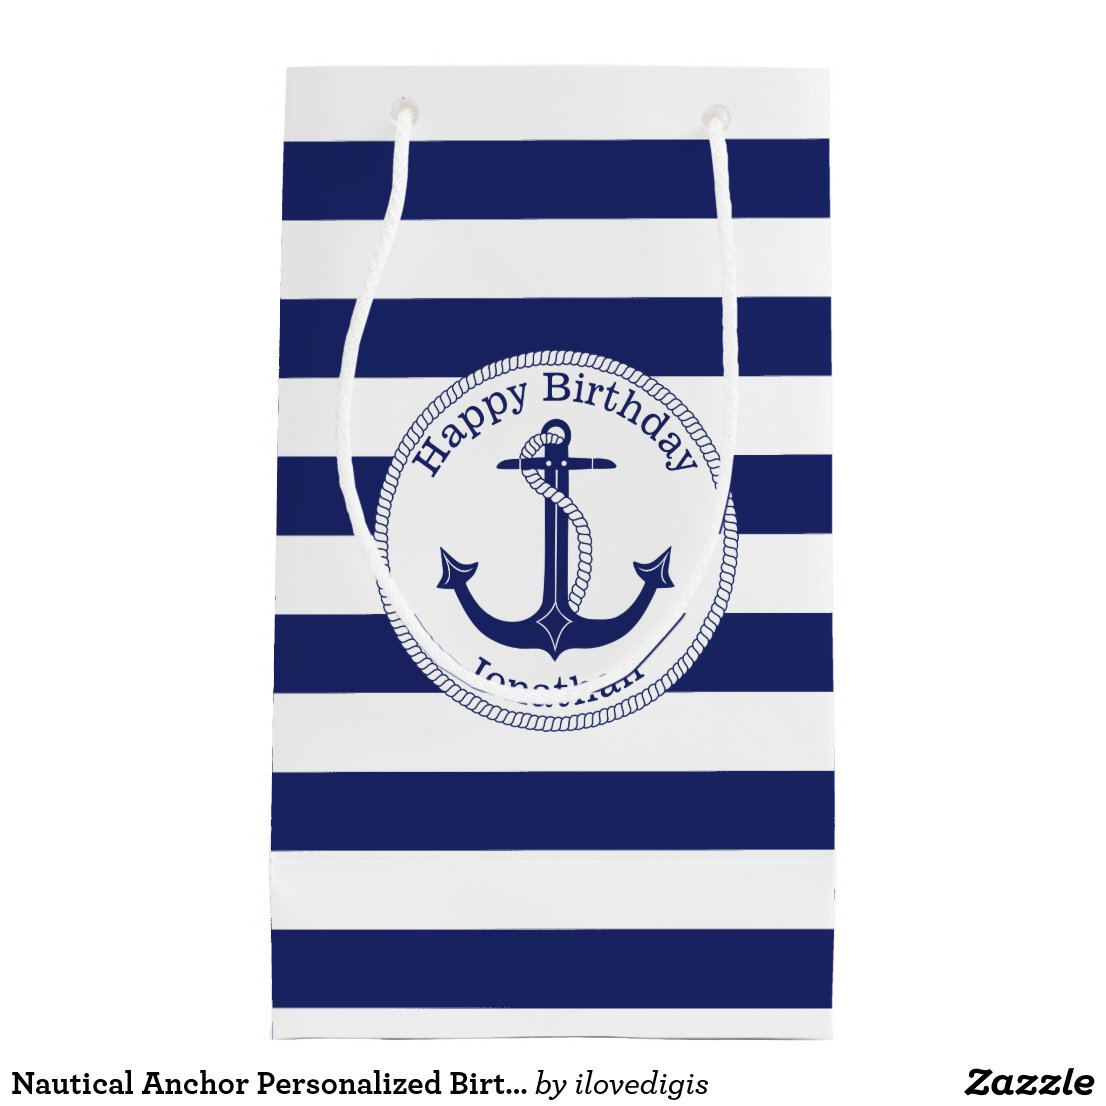 Nautical Anchor Personalised Birthday Gift Bag